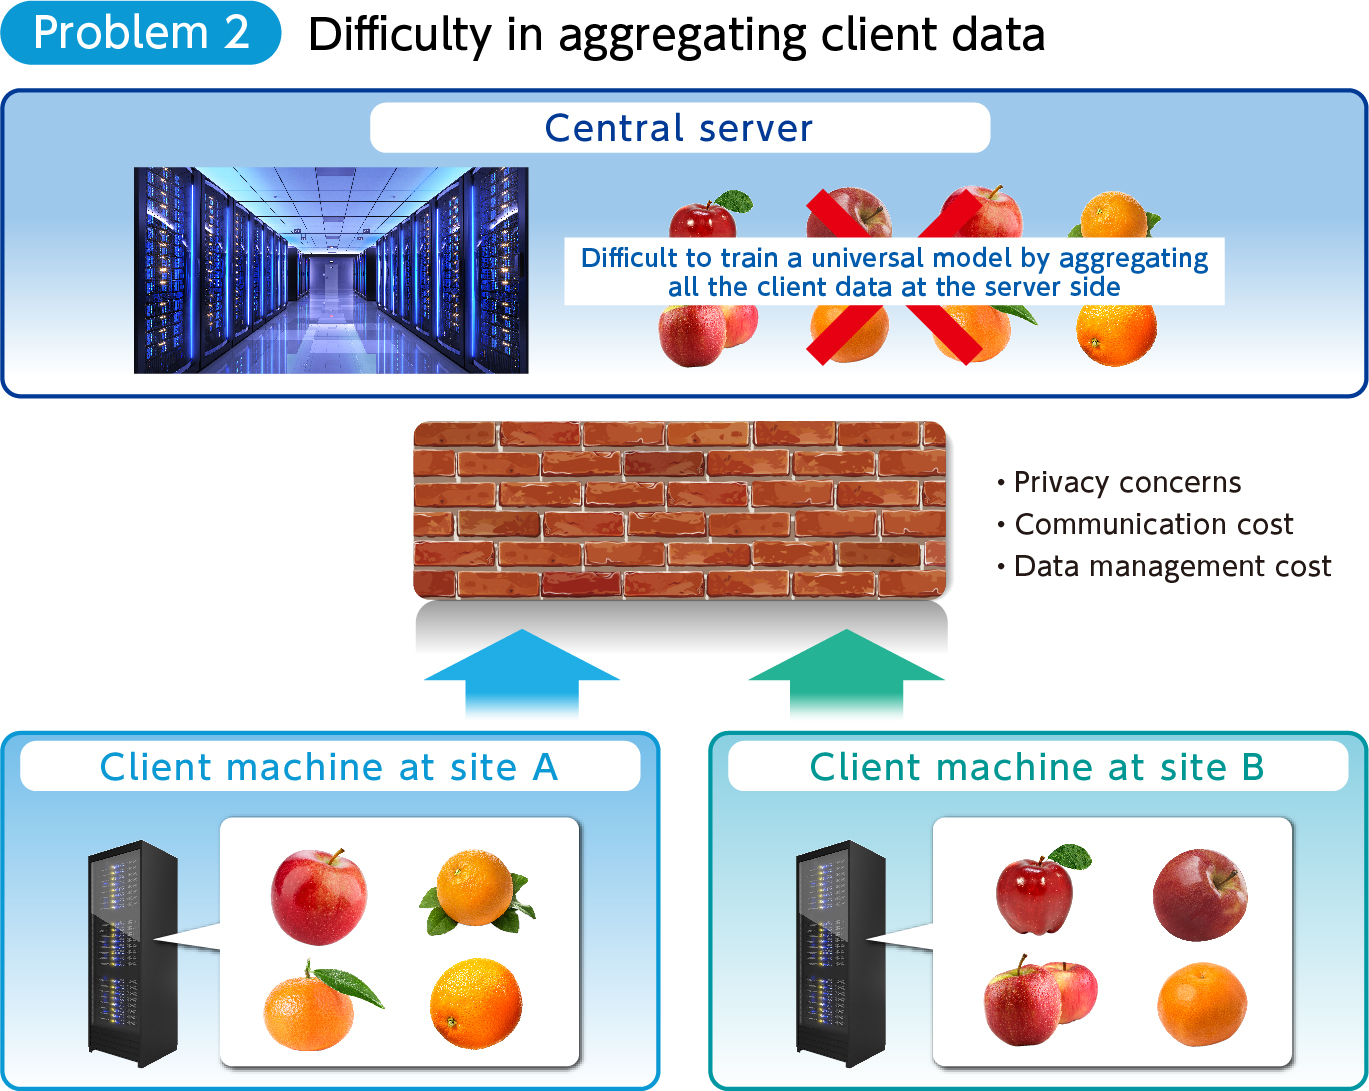 Problem 2: Difficulty in aggregating client data